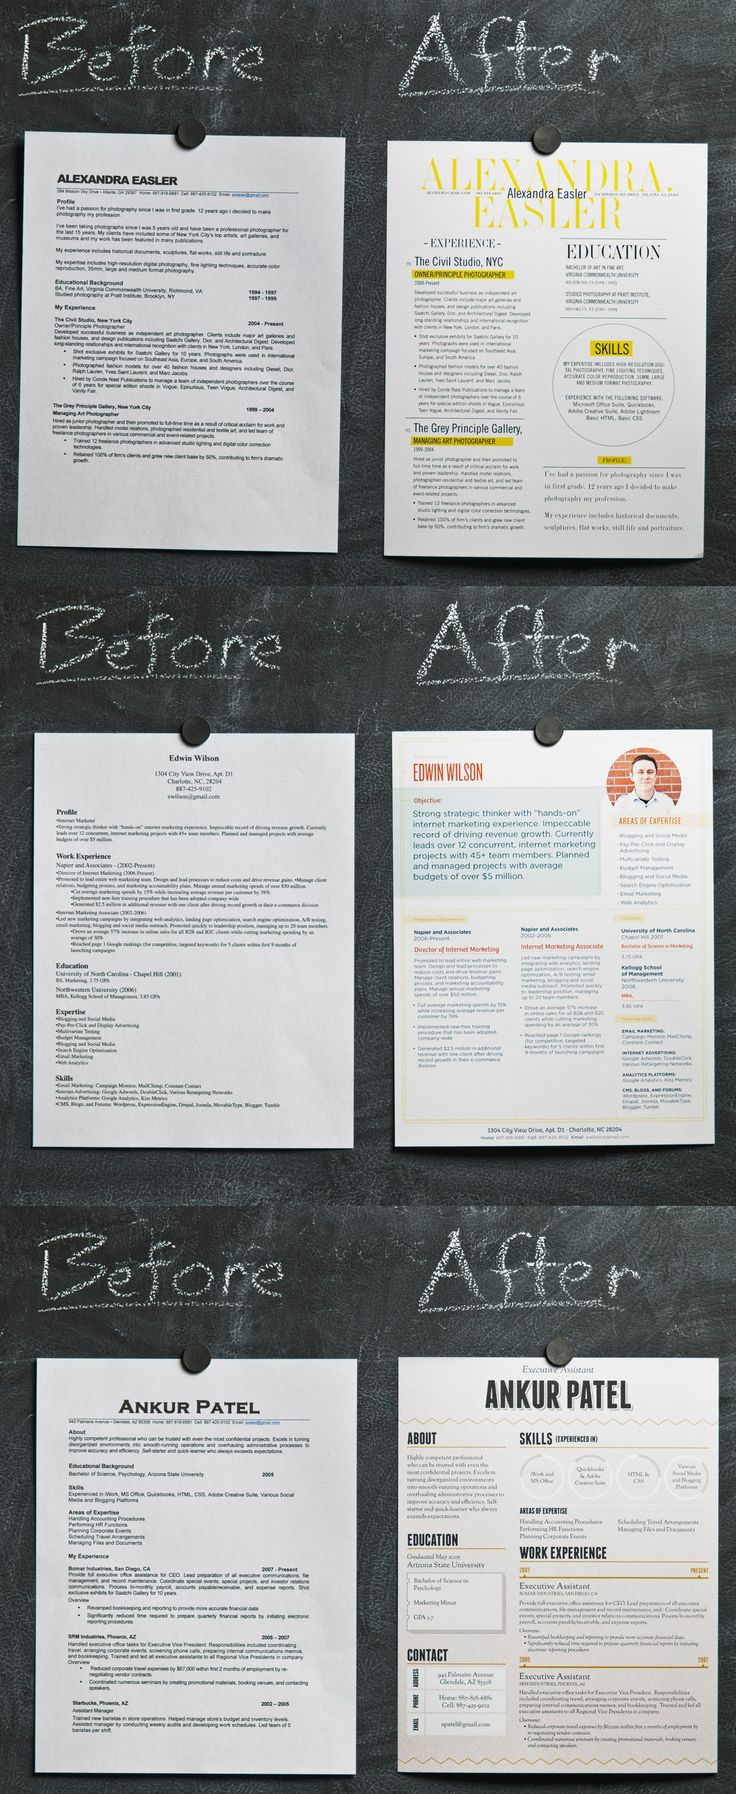 A good design makes a HUGE difference. Here are some tips to make your resume stand out. {also good thoughts for media kits}